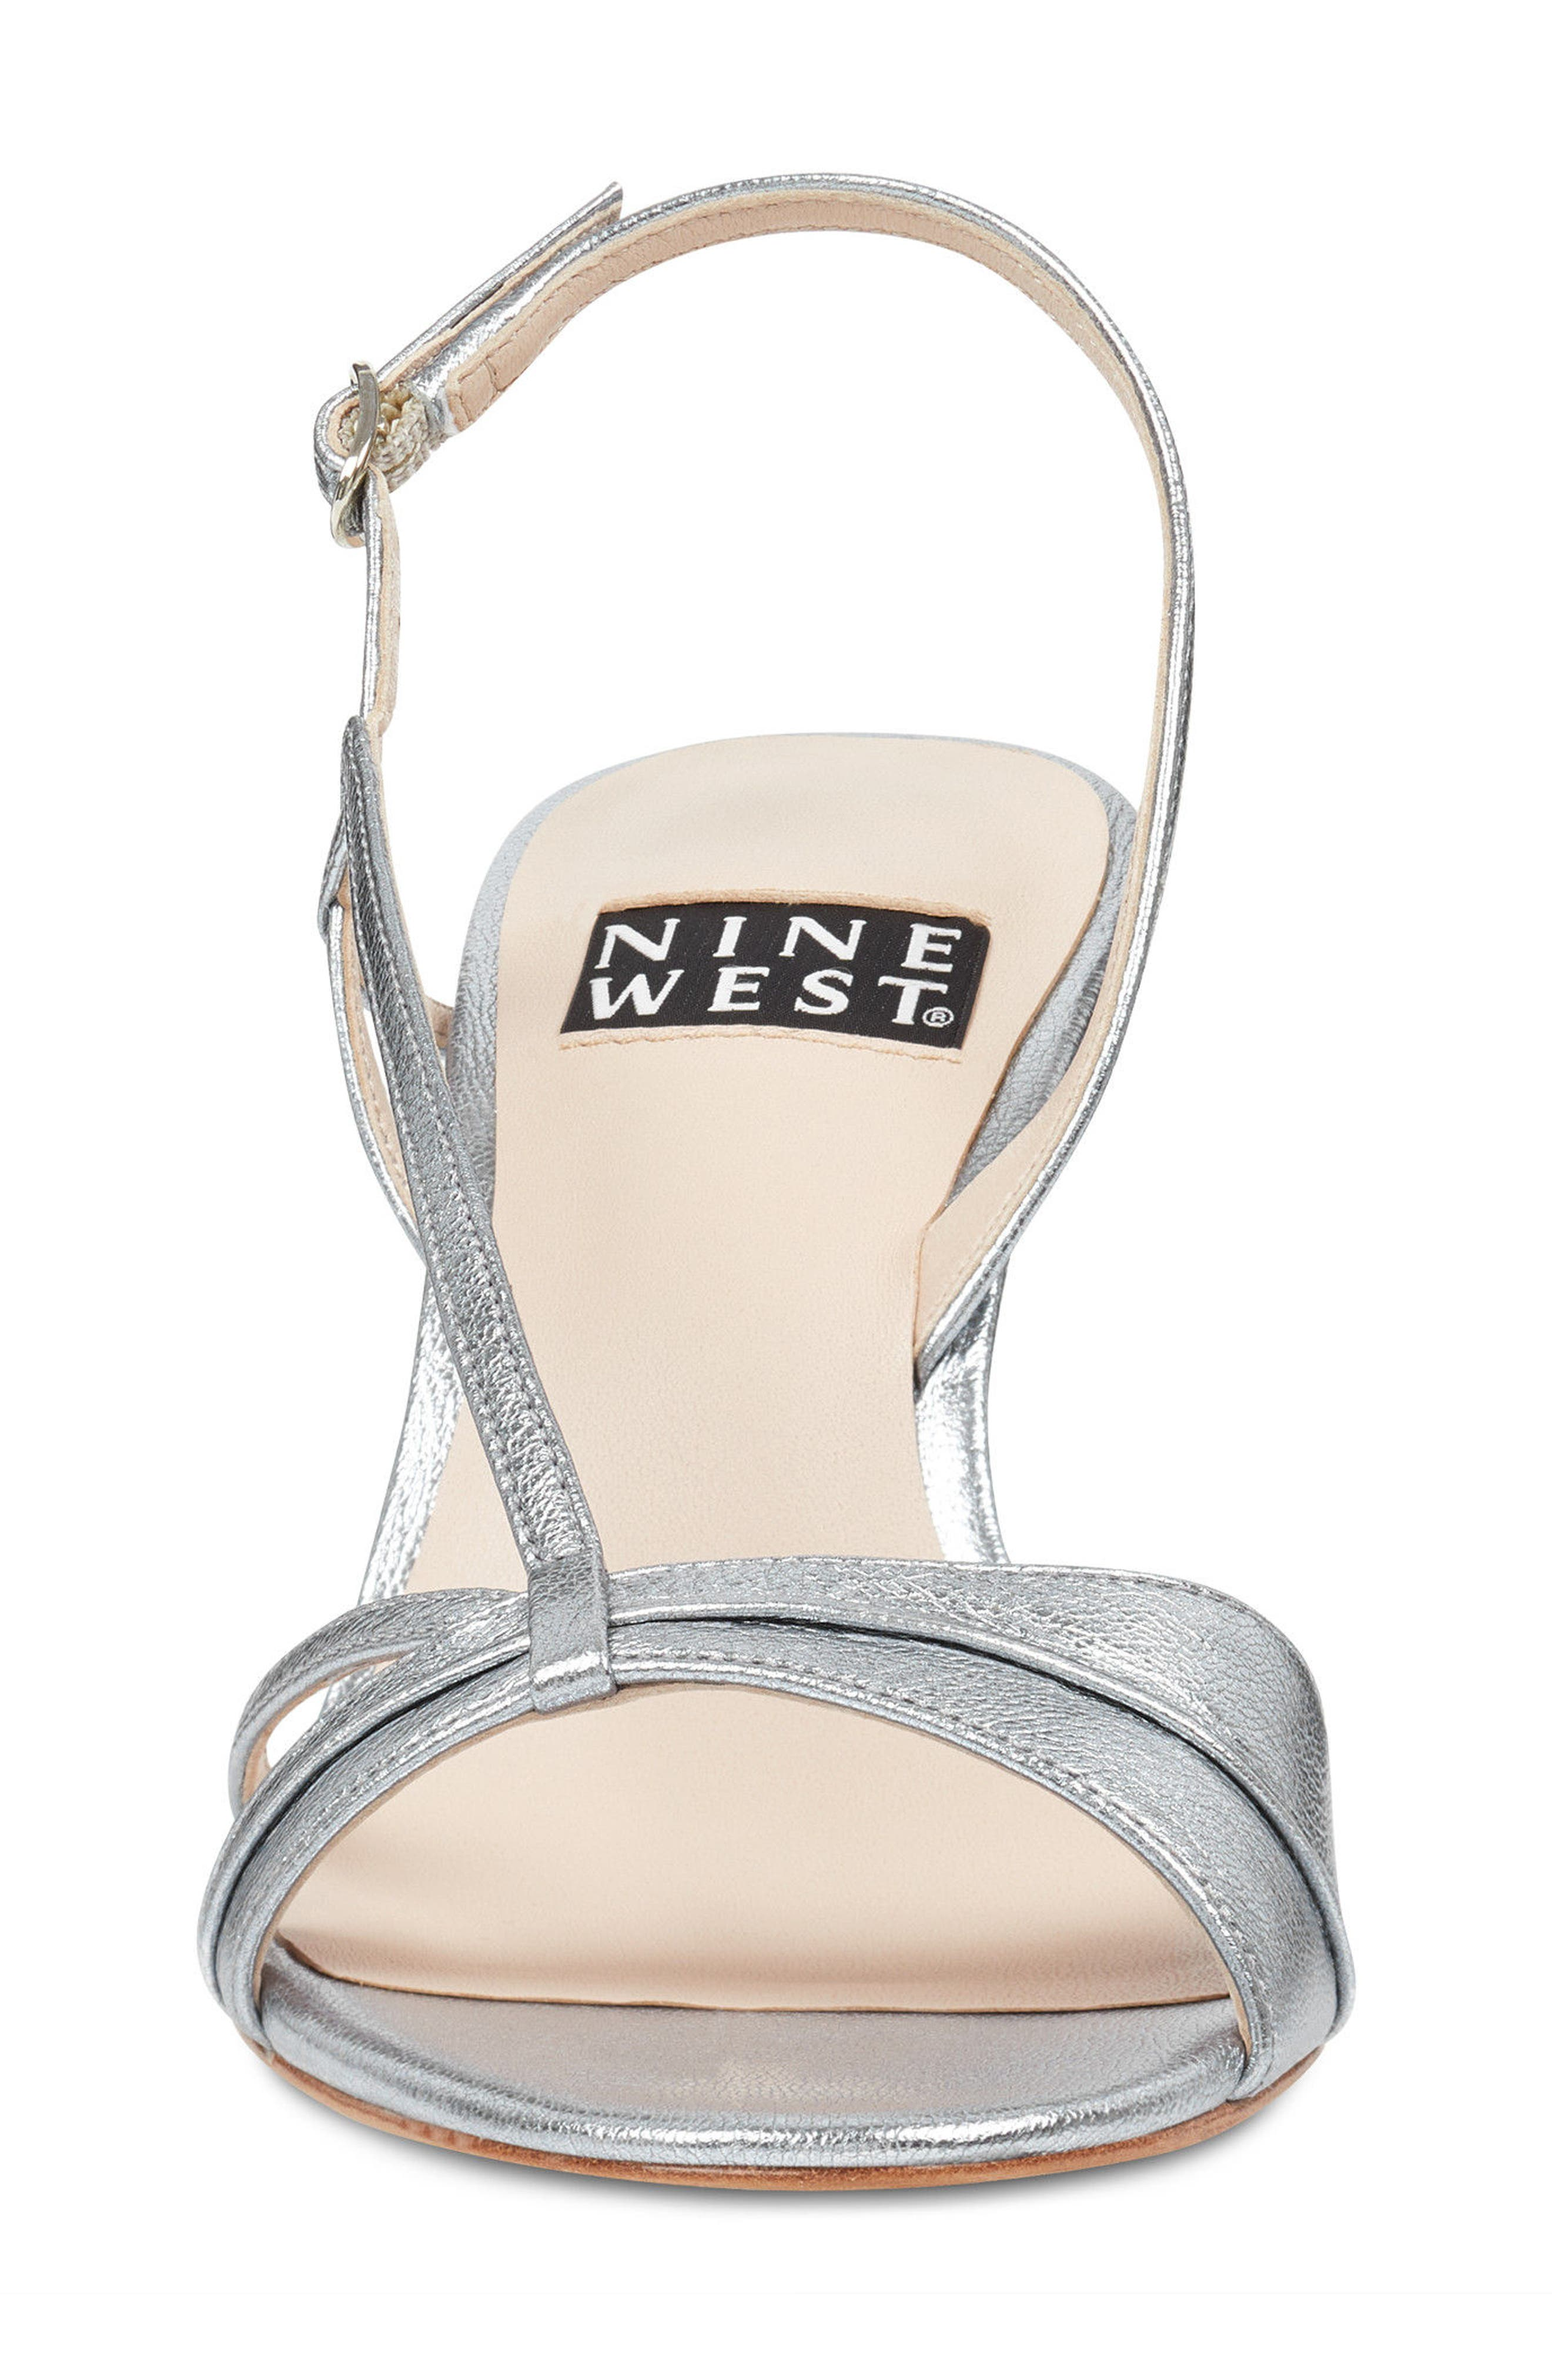 Accolia - 40th Anniversary Capsule Collection Sandal,                             Alternate thumbnail 4, color,                             SILVER LEATHER